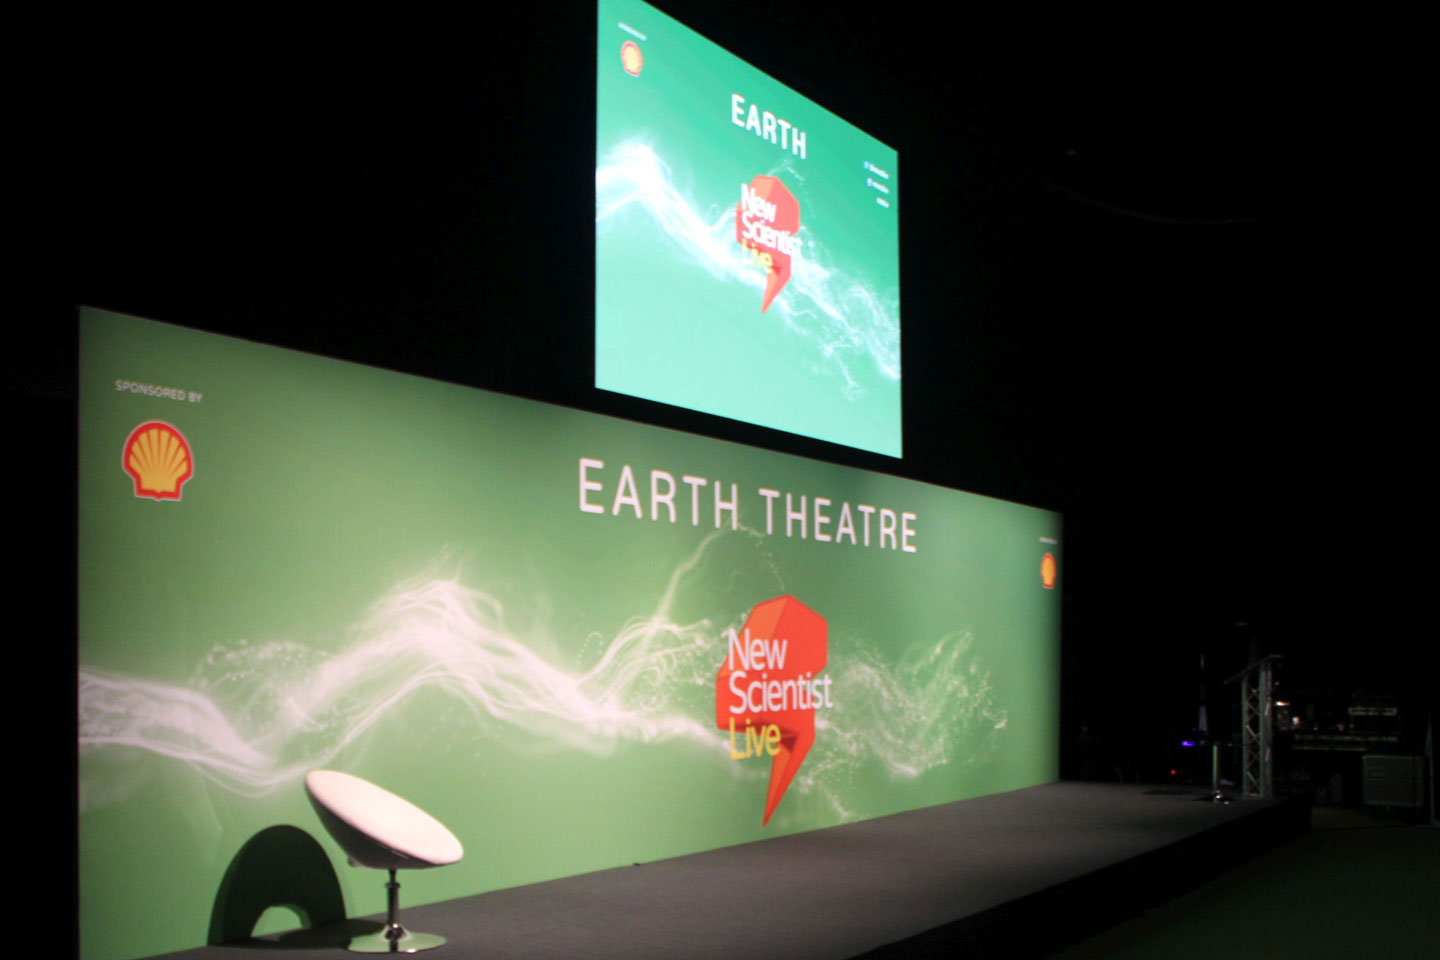 OneBigStar New Scientist Live Earth Theatre Exhibition Features & Theatres